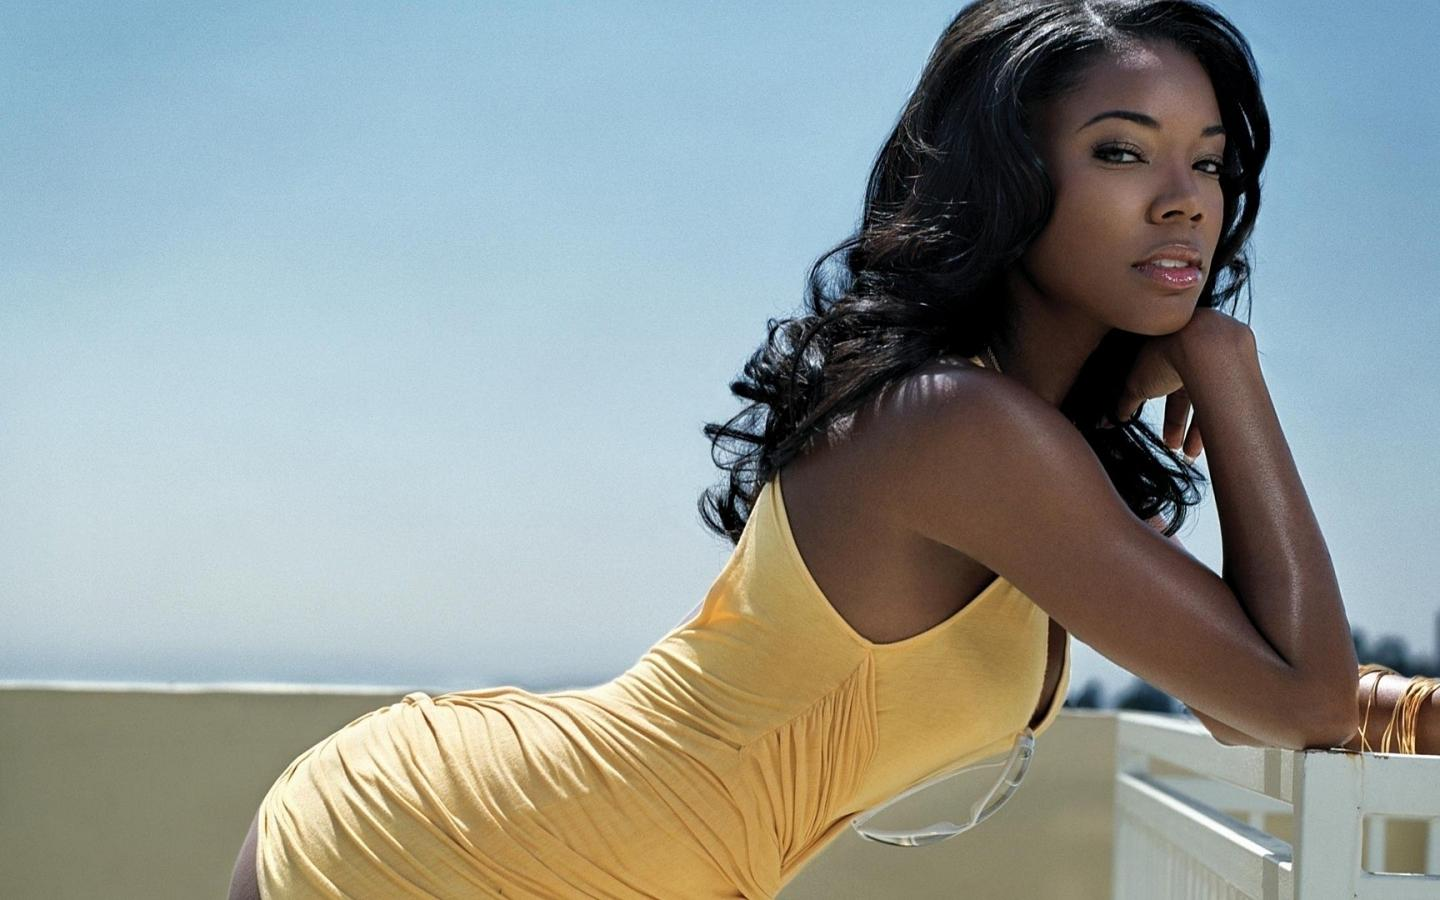 1440x900 - Gabrielle Union Wallpapers 25